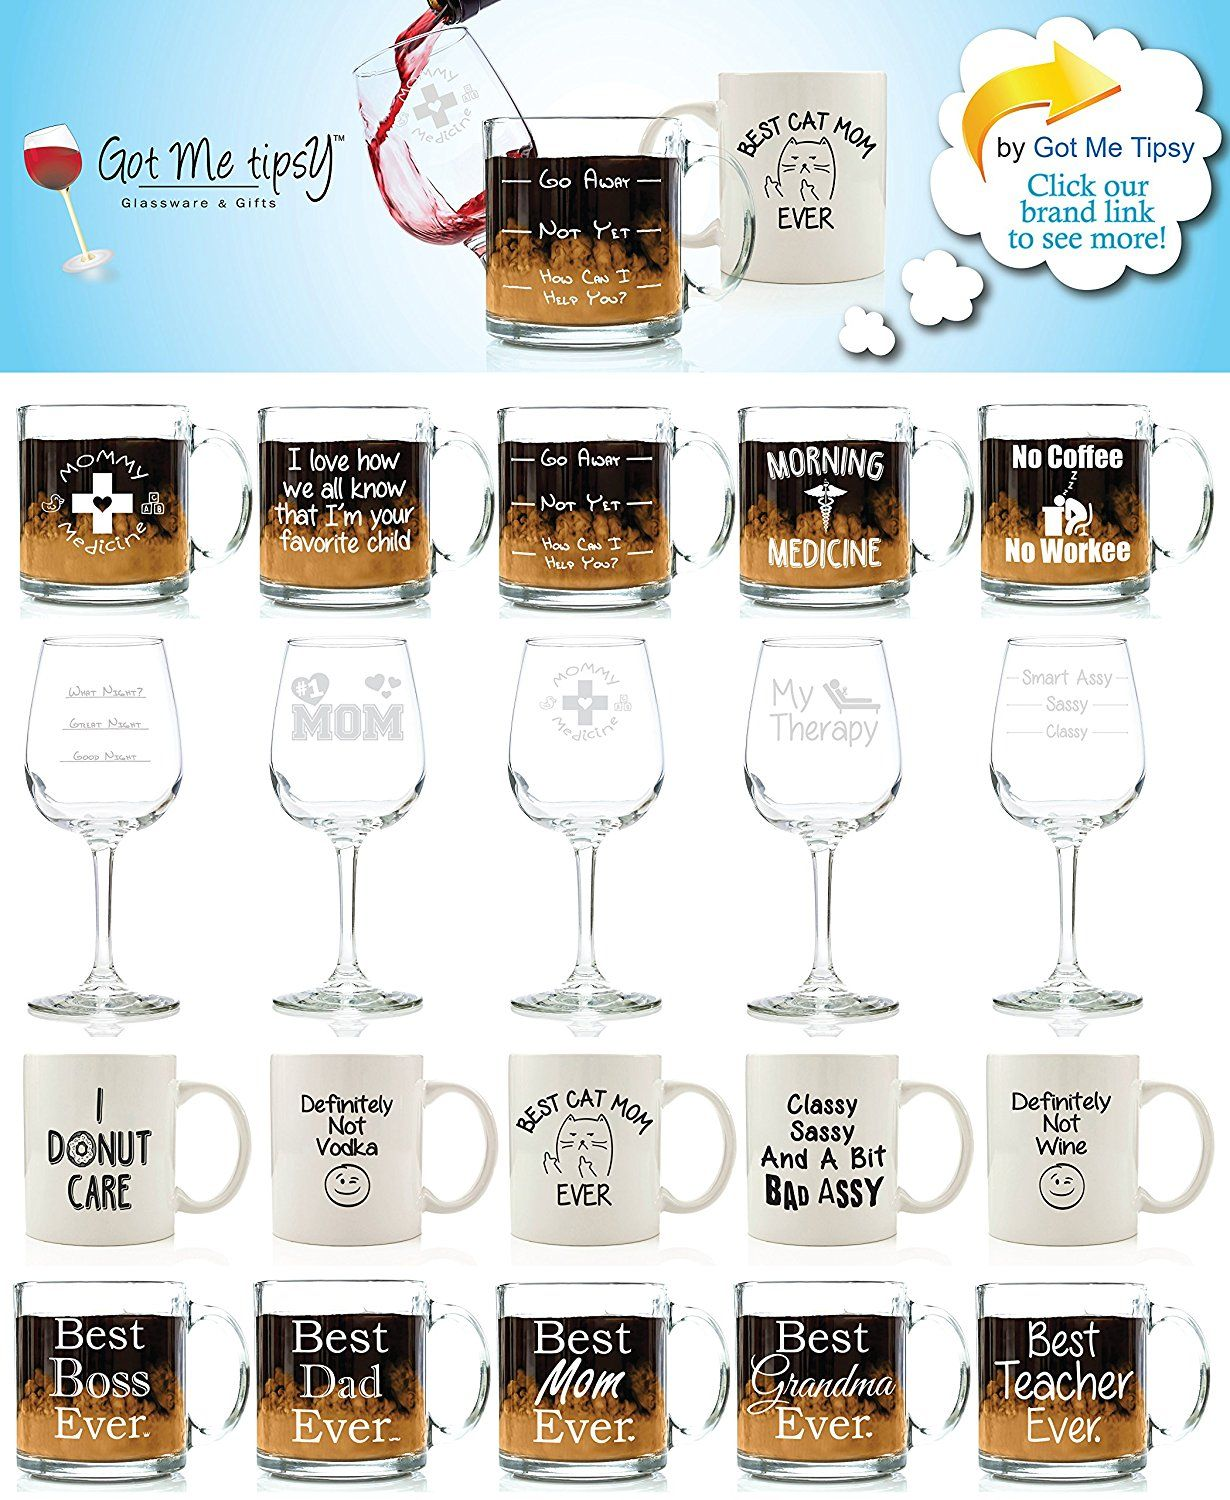 Mr Mrs Got Me Tipsy KQWGPG Newlyweds 16 oz Beer Pint Glass Mom Wedding Dad Him Christmas Present Idea Couples Her 13 oz Wine Glass Anniversary Housewarming Parents King and Queen Gift Set Engagement